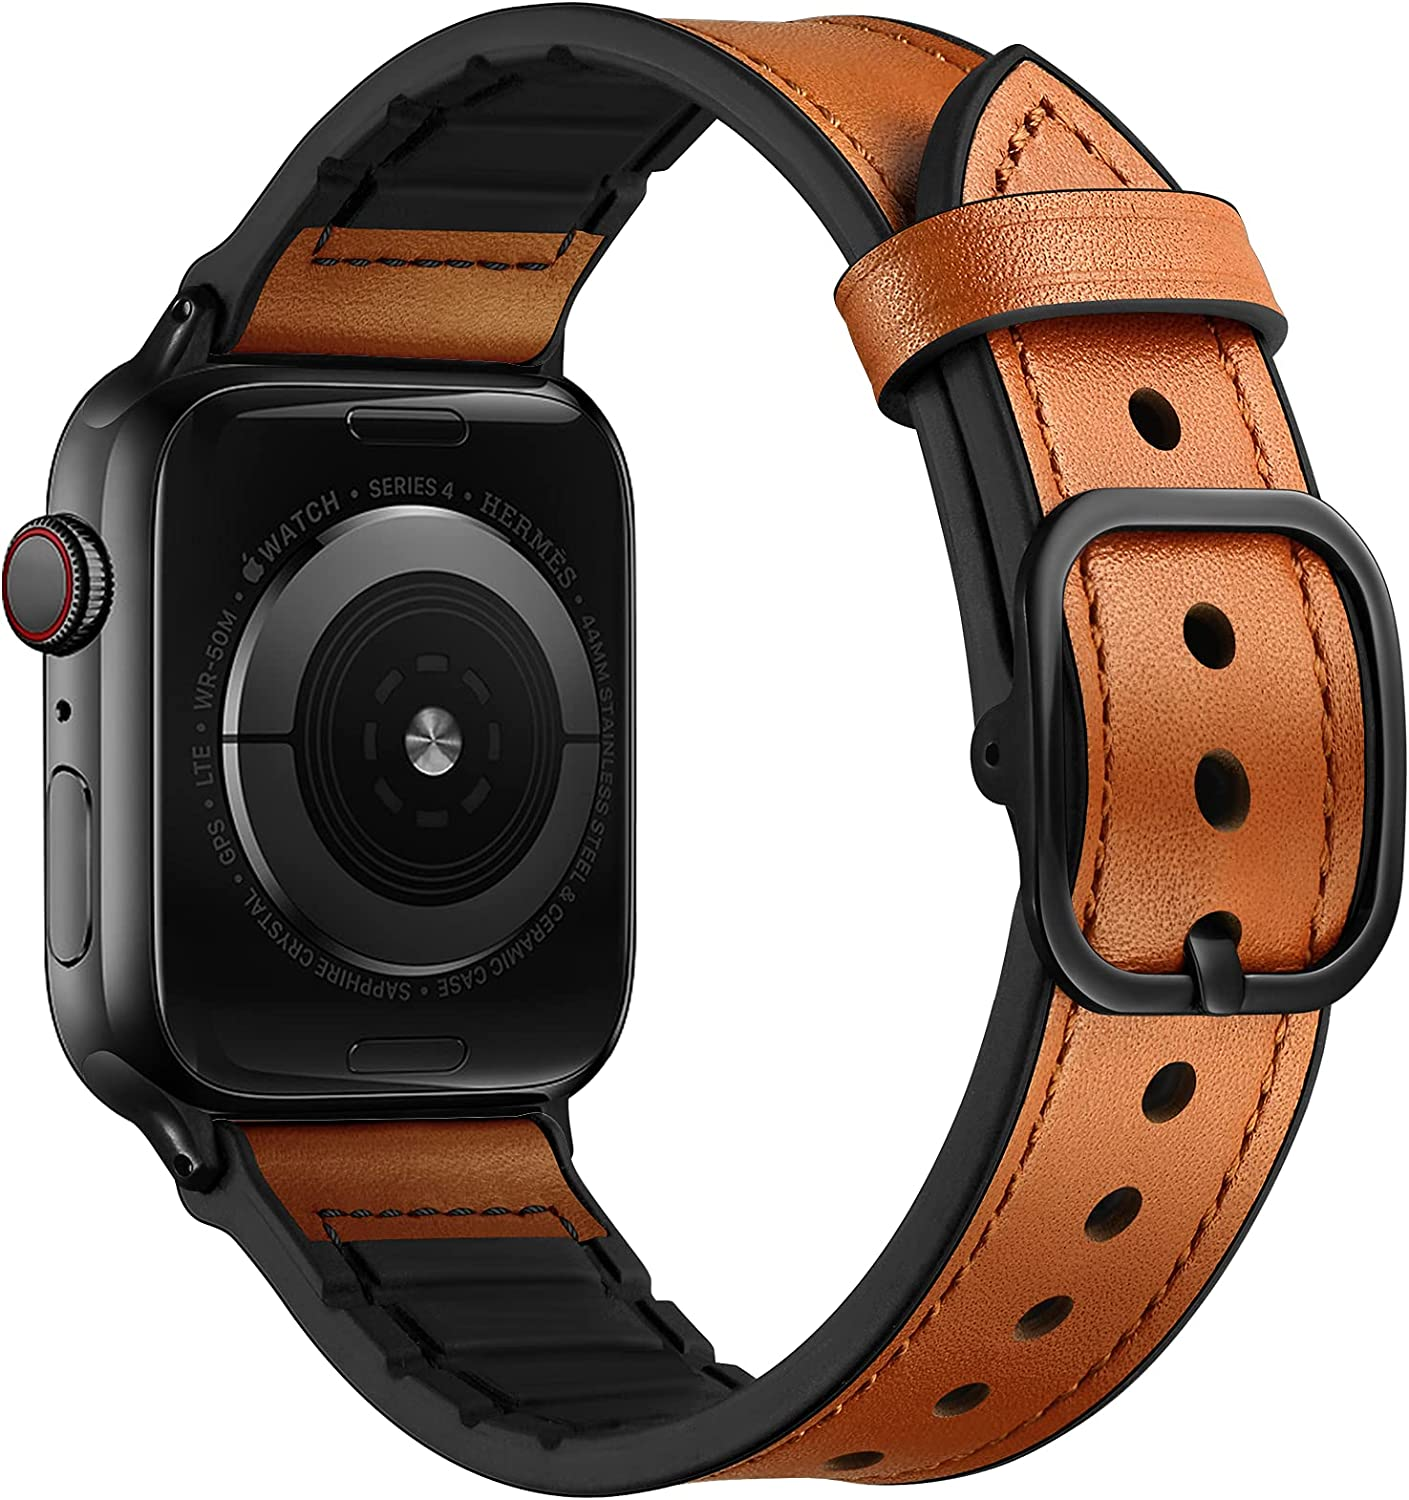 OUHENG Leather Bands Compatible with Apple Watch 44mm 42mm, Genuine Leather and Rubber Sweatproof Hybrid Band Strap Compatible for iWatch SE Series 6 5 4 3 2 1, Light Brown Band with Black Adapter